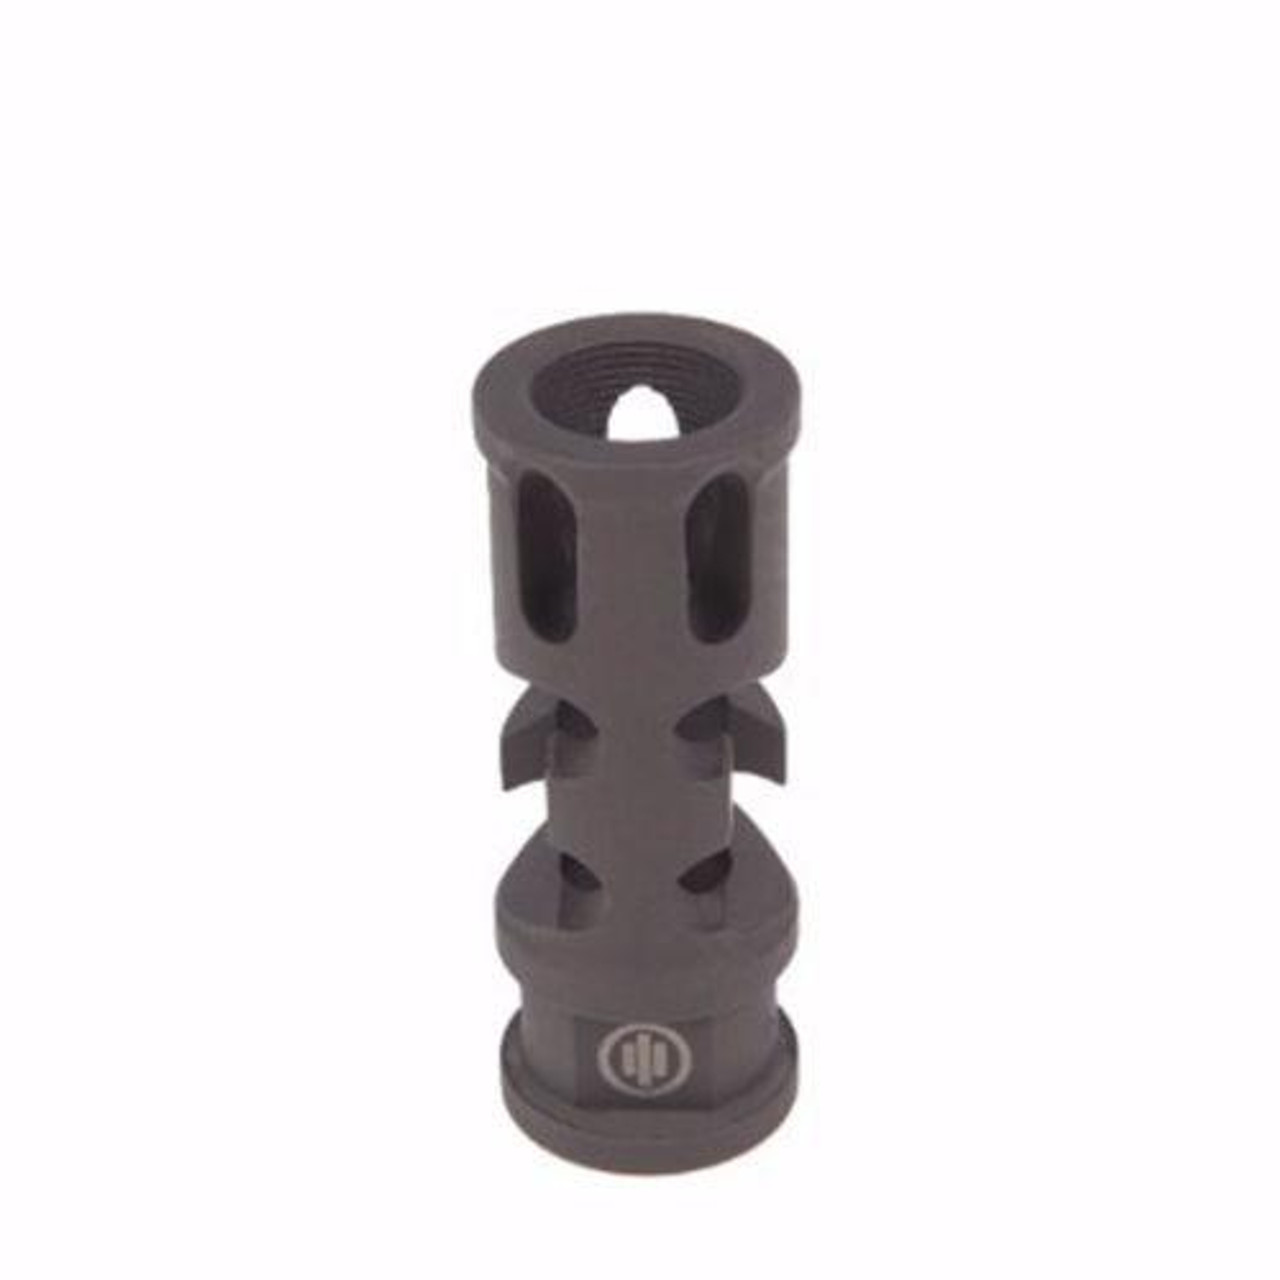 All Steel 14x1 LH Thread Short Competition Muzzle Brake Device For 7.62x39mm